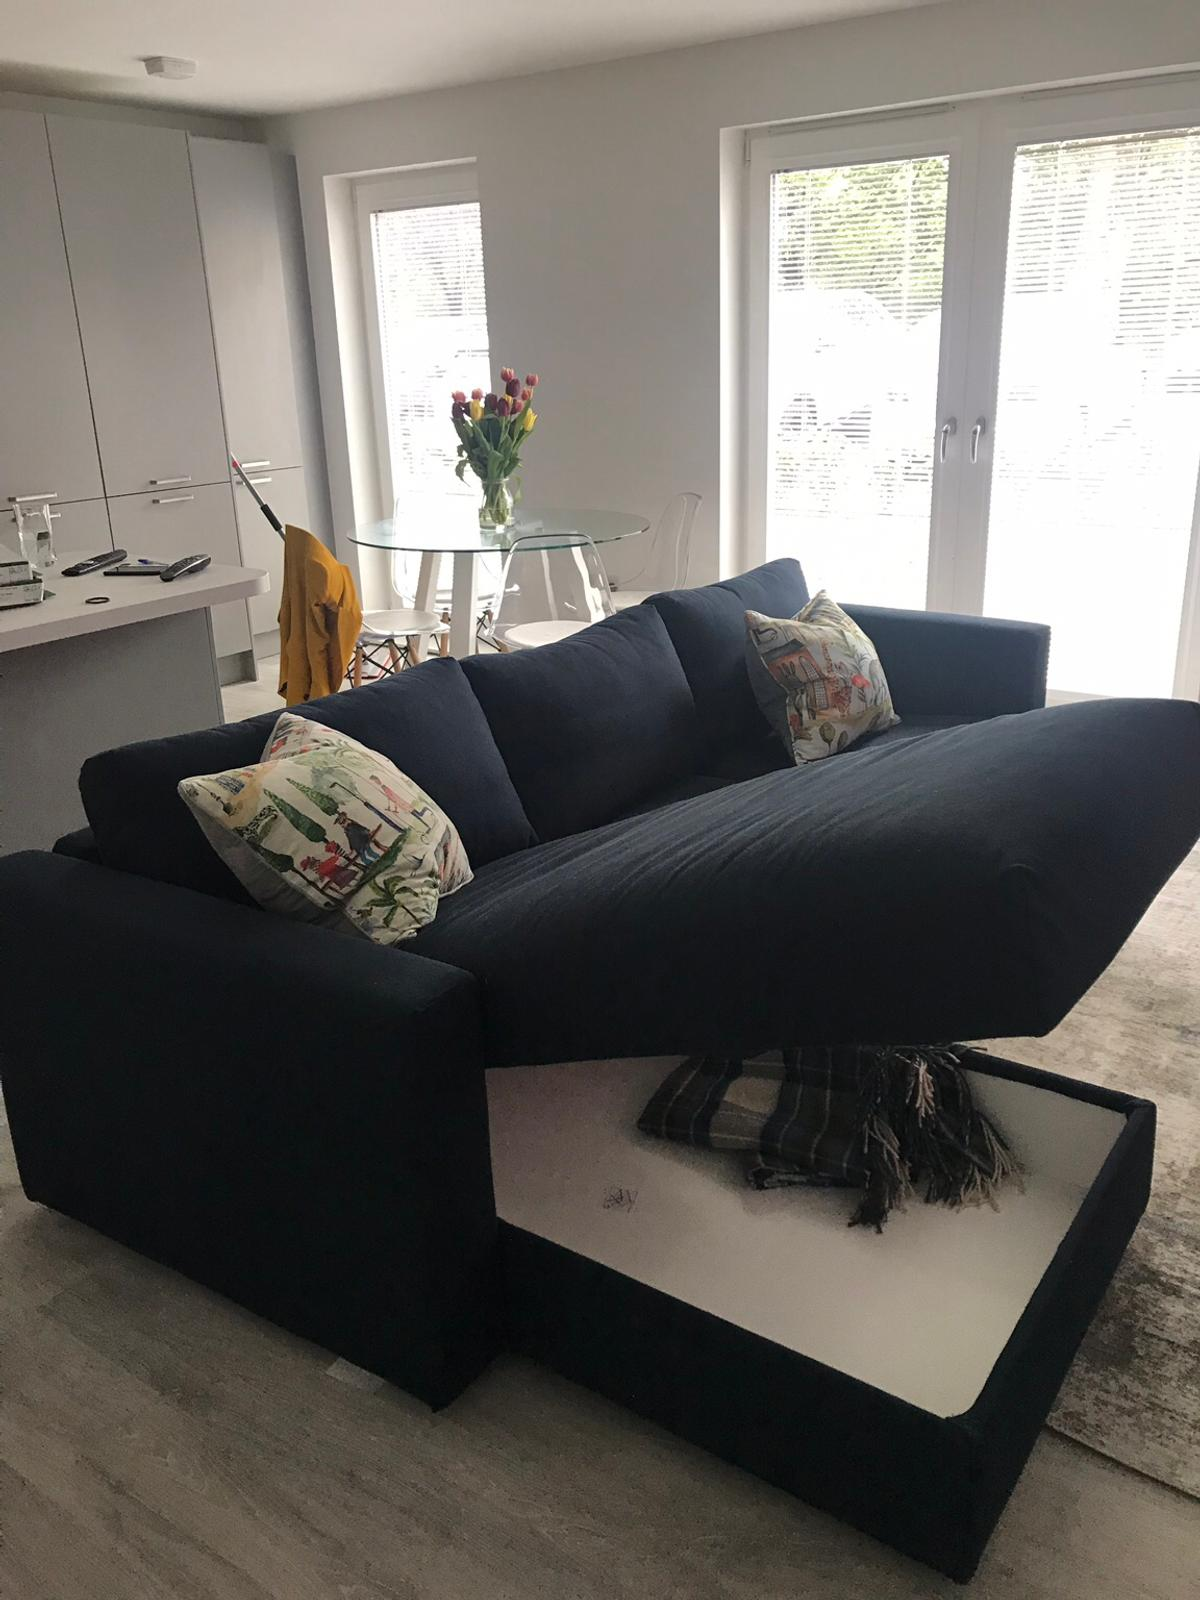 Phenomenal Ikea Vimle Sofa With Chaise Longue In G11 Broomhill Fur 180 Inzonedesignstudio Interior Chair Design Inzonedesignstudiocom